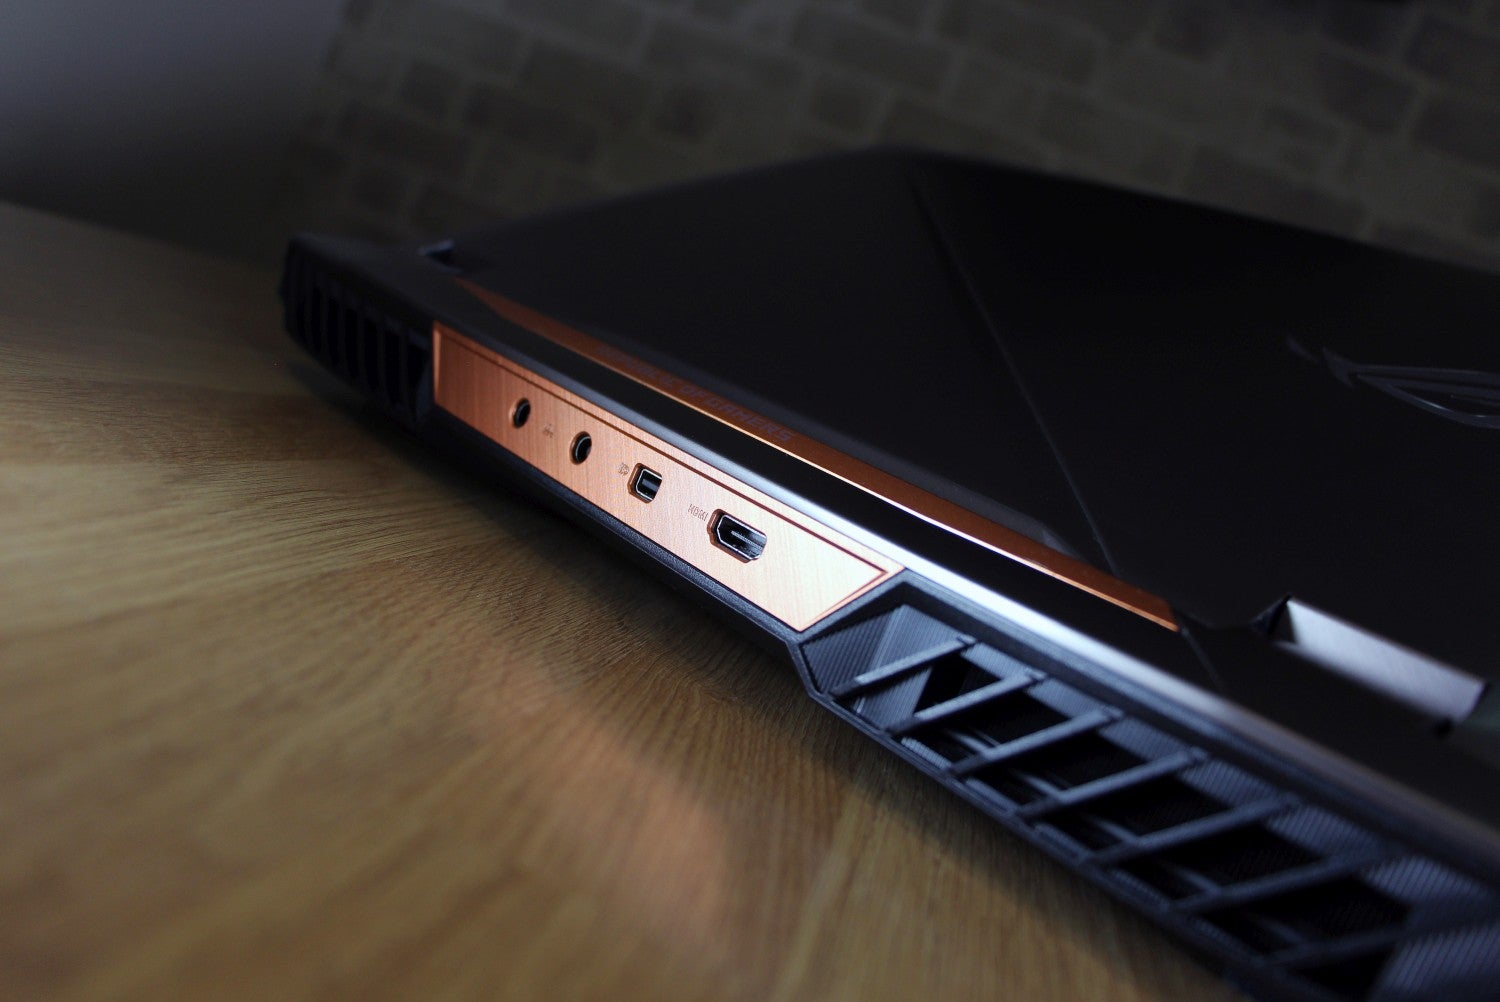 Asus ROG G703GX Review | Trusted Reviews